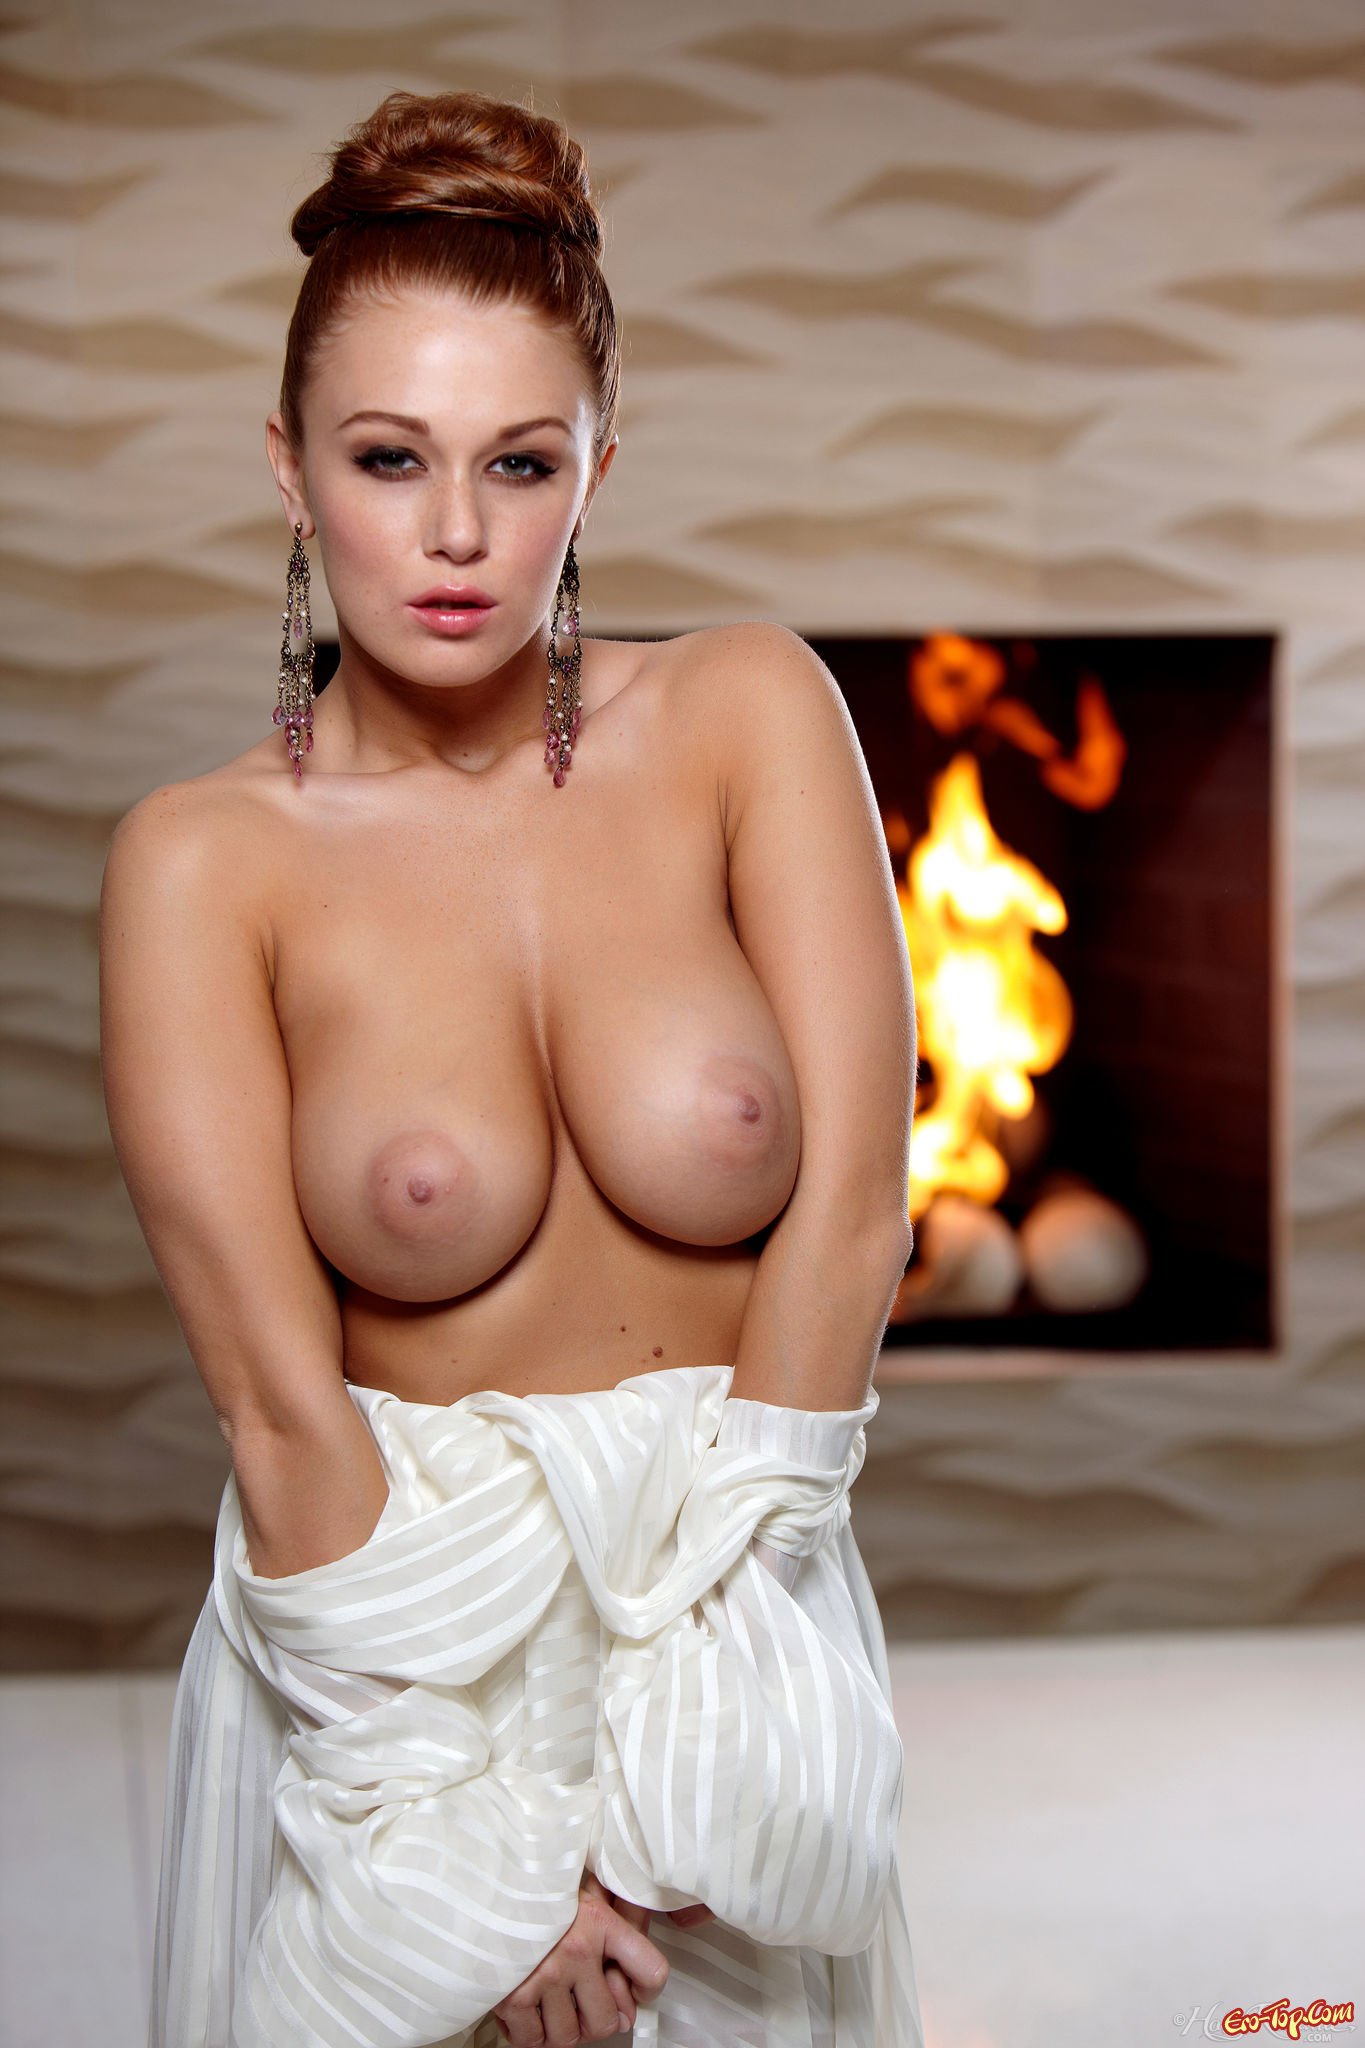 Erotic breast maas porno photos